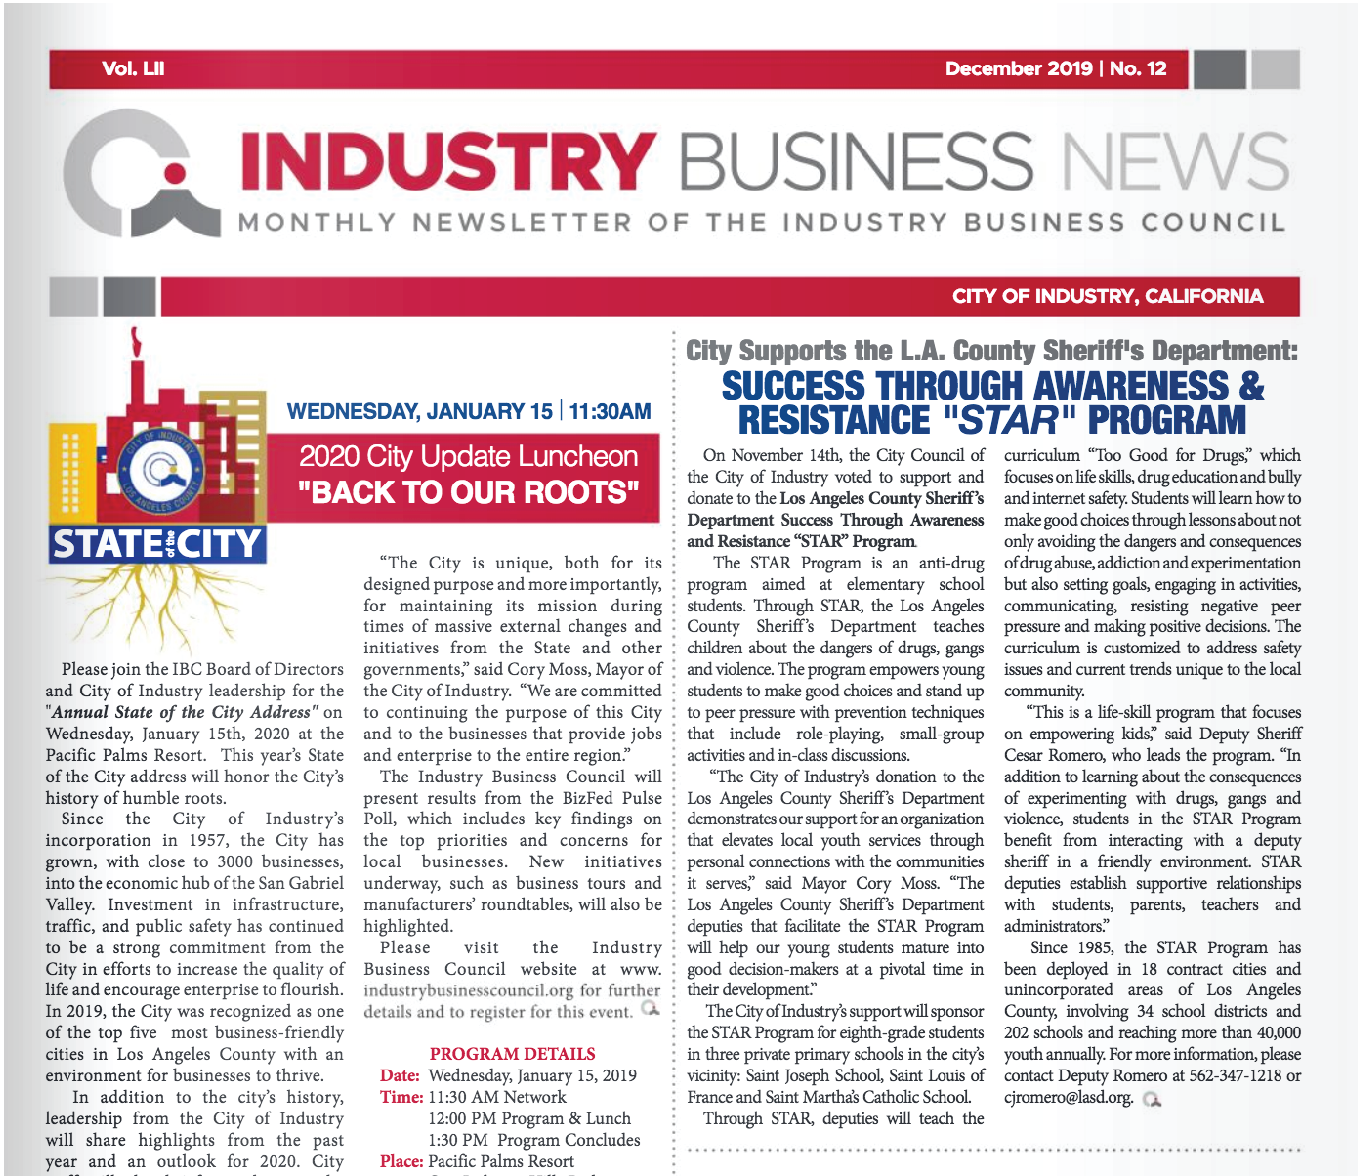 NEWSLETTER | 2019 December Industry Business News